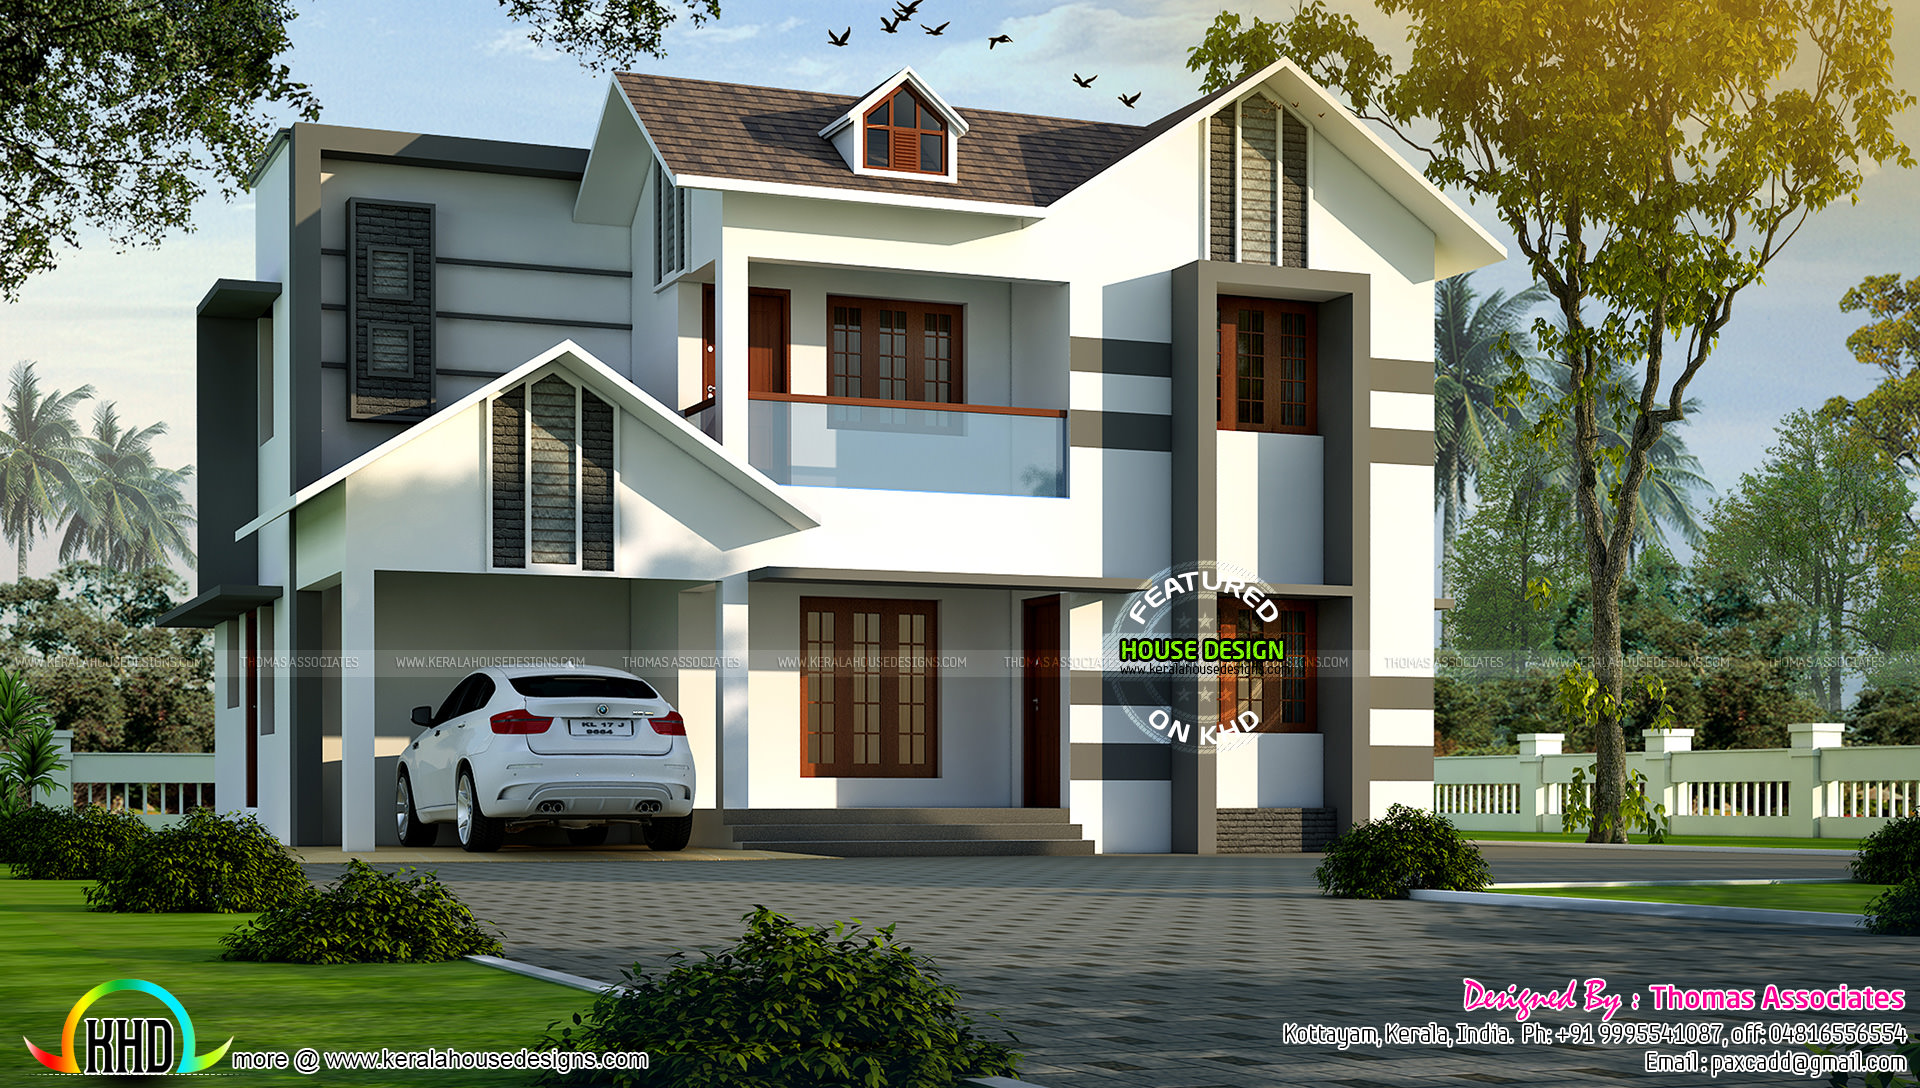 4 bhk villa in 1850 sq ft kerala home design and floor plans for 4 bhk home design